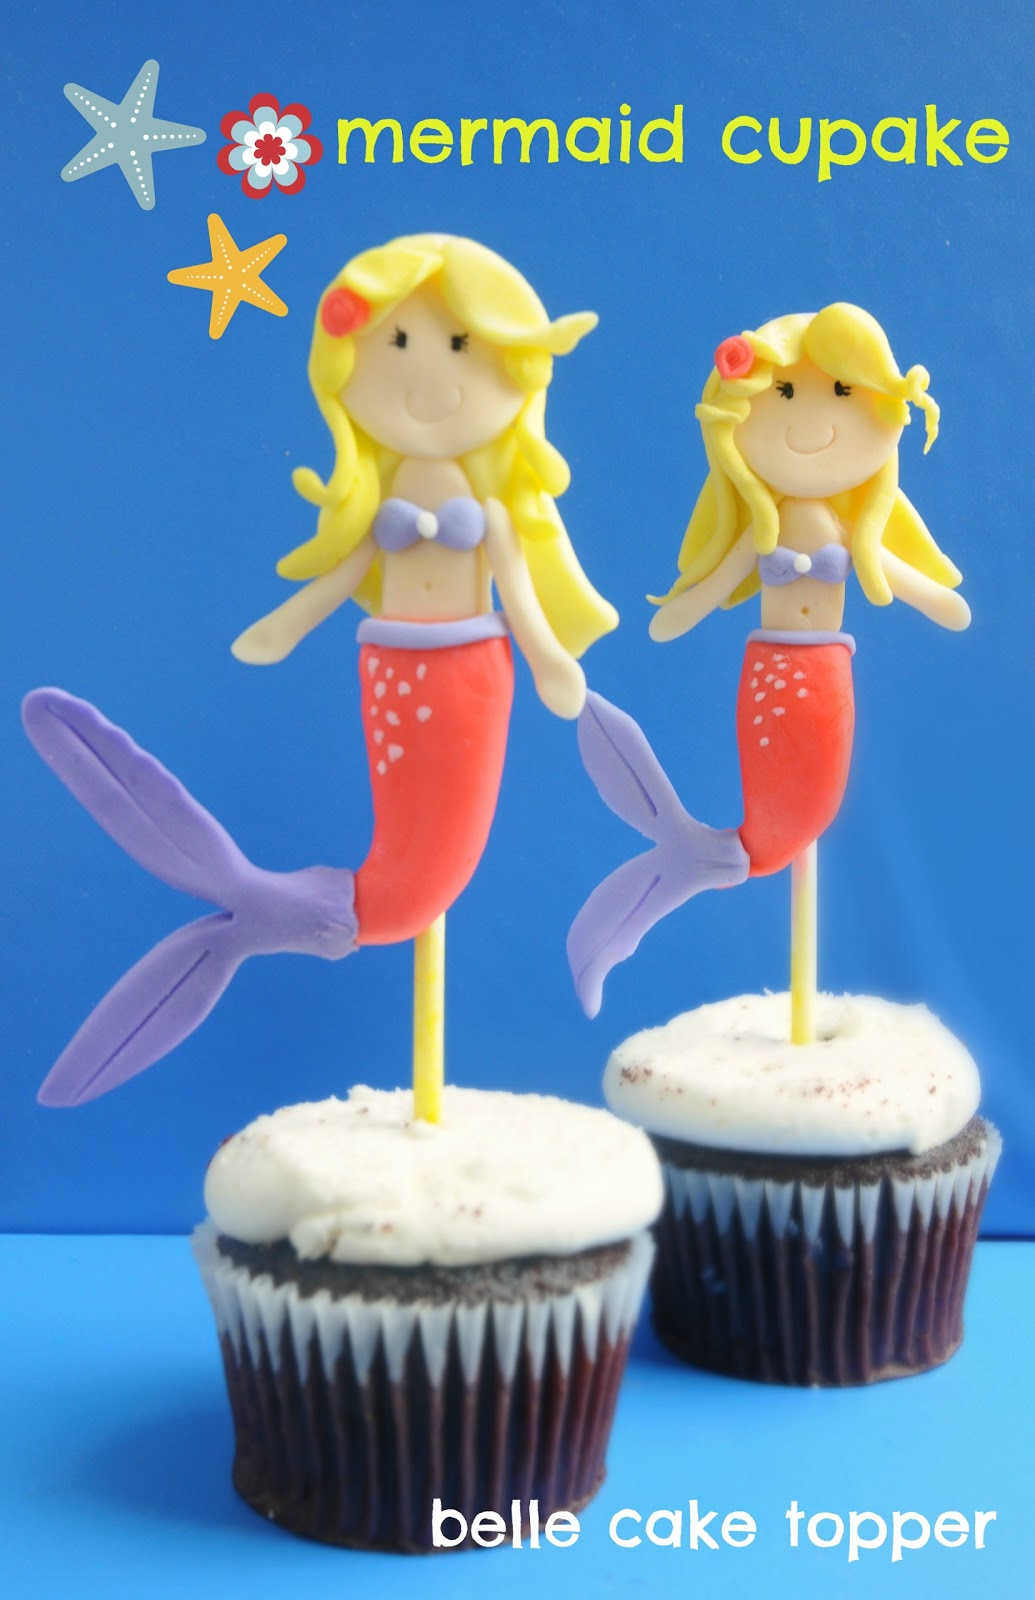 Belle Cake Topper And Mould Mermaid Cupcake